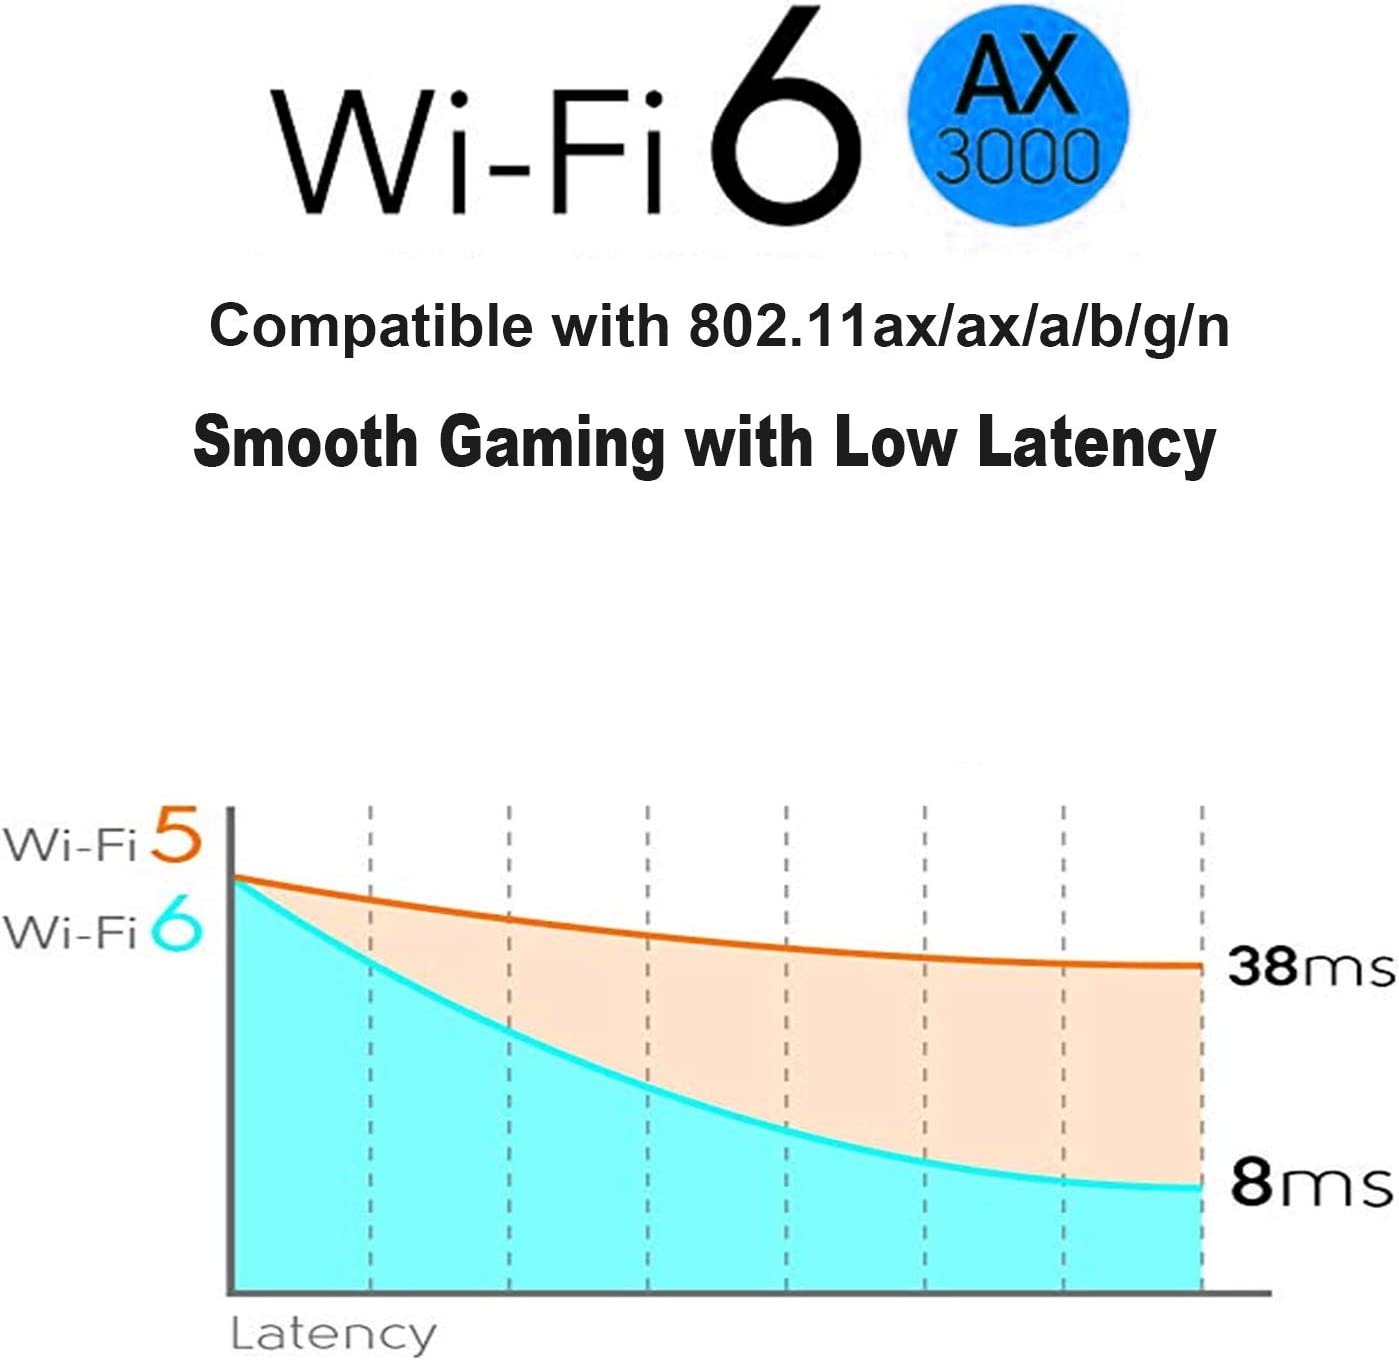 Heat Sink Tech Supports Windows 10 Up to 3000Mbps Bluetooth 5.0 64bit only WiFi 6 AX3000 PCIe WiFi Card for PC 802.11AX Dual Band Wireless Adapter with MU-MIMO,Ultra-Low Latency